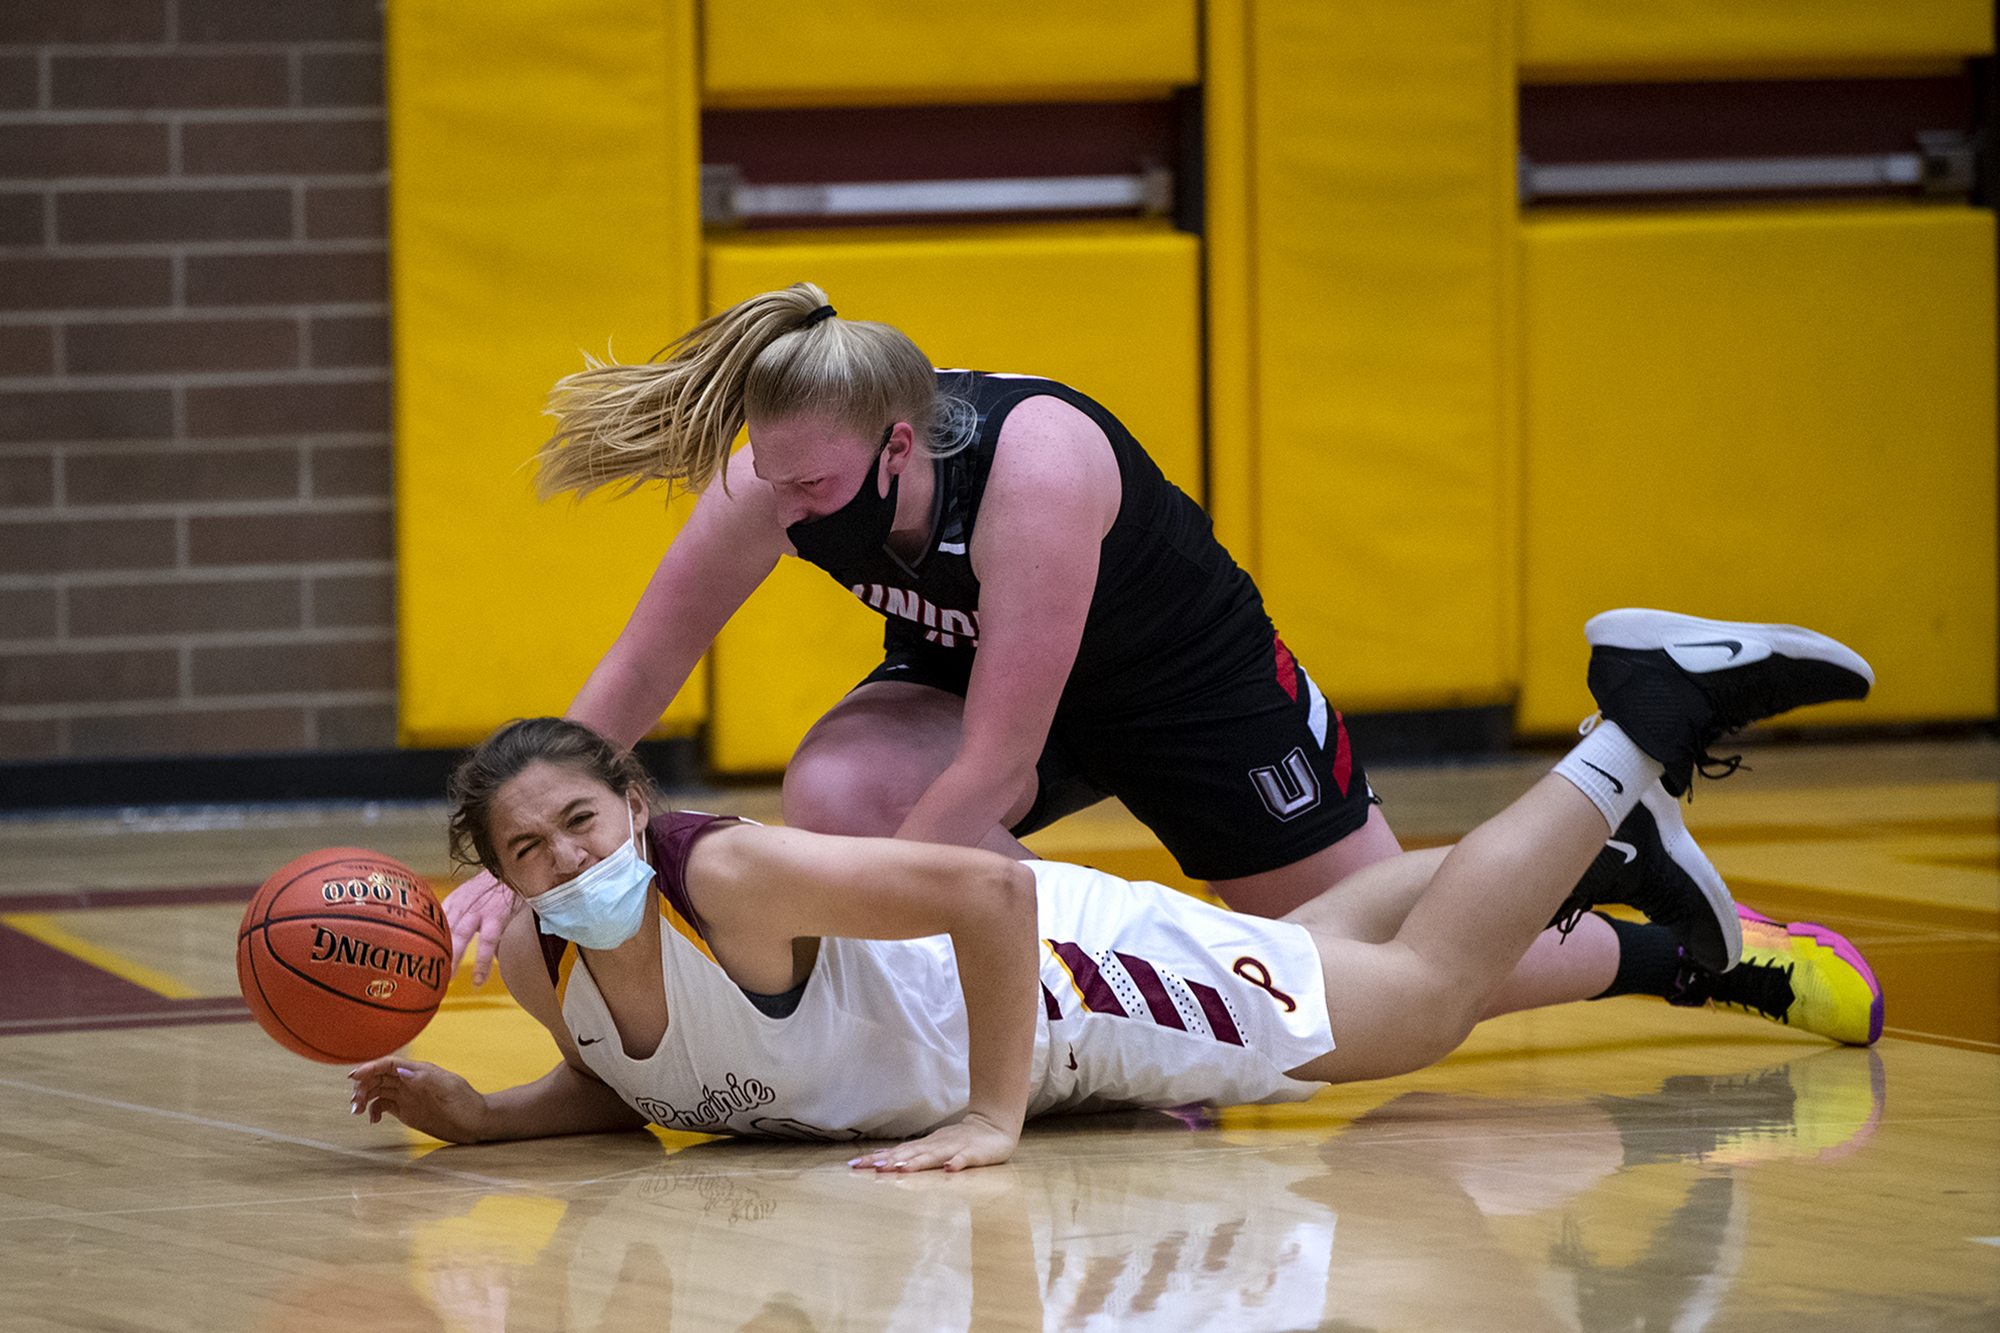 Prairie's Alysia Fraly, bottom, falls to the ground after colliding with Union's Ariel Ammentorp while they battled for a rebound in a 4A/3A Greater St. Helens League girls basketball game on Thursday, April 22, 2021, at Prairie High School. Union won 50-46.